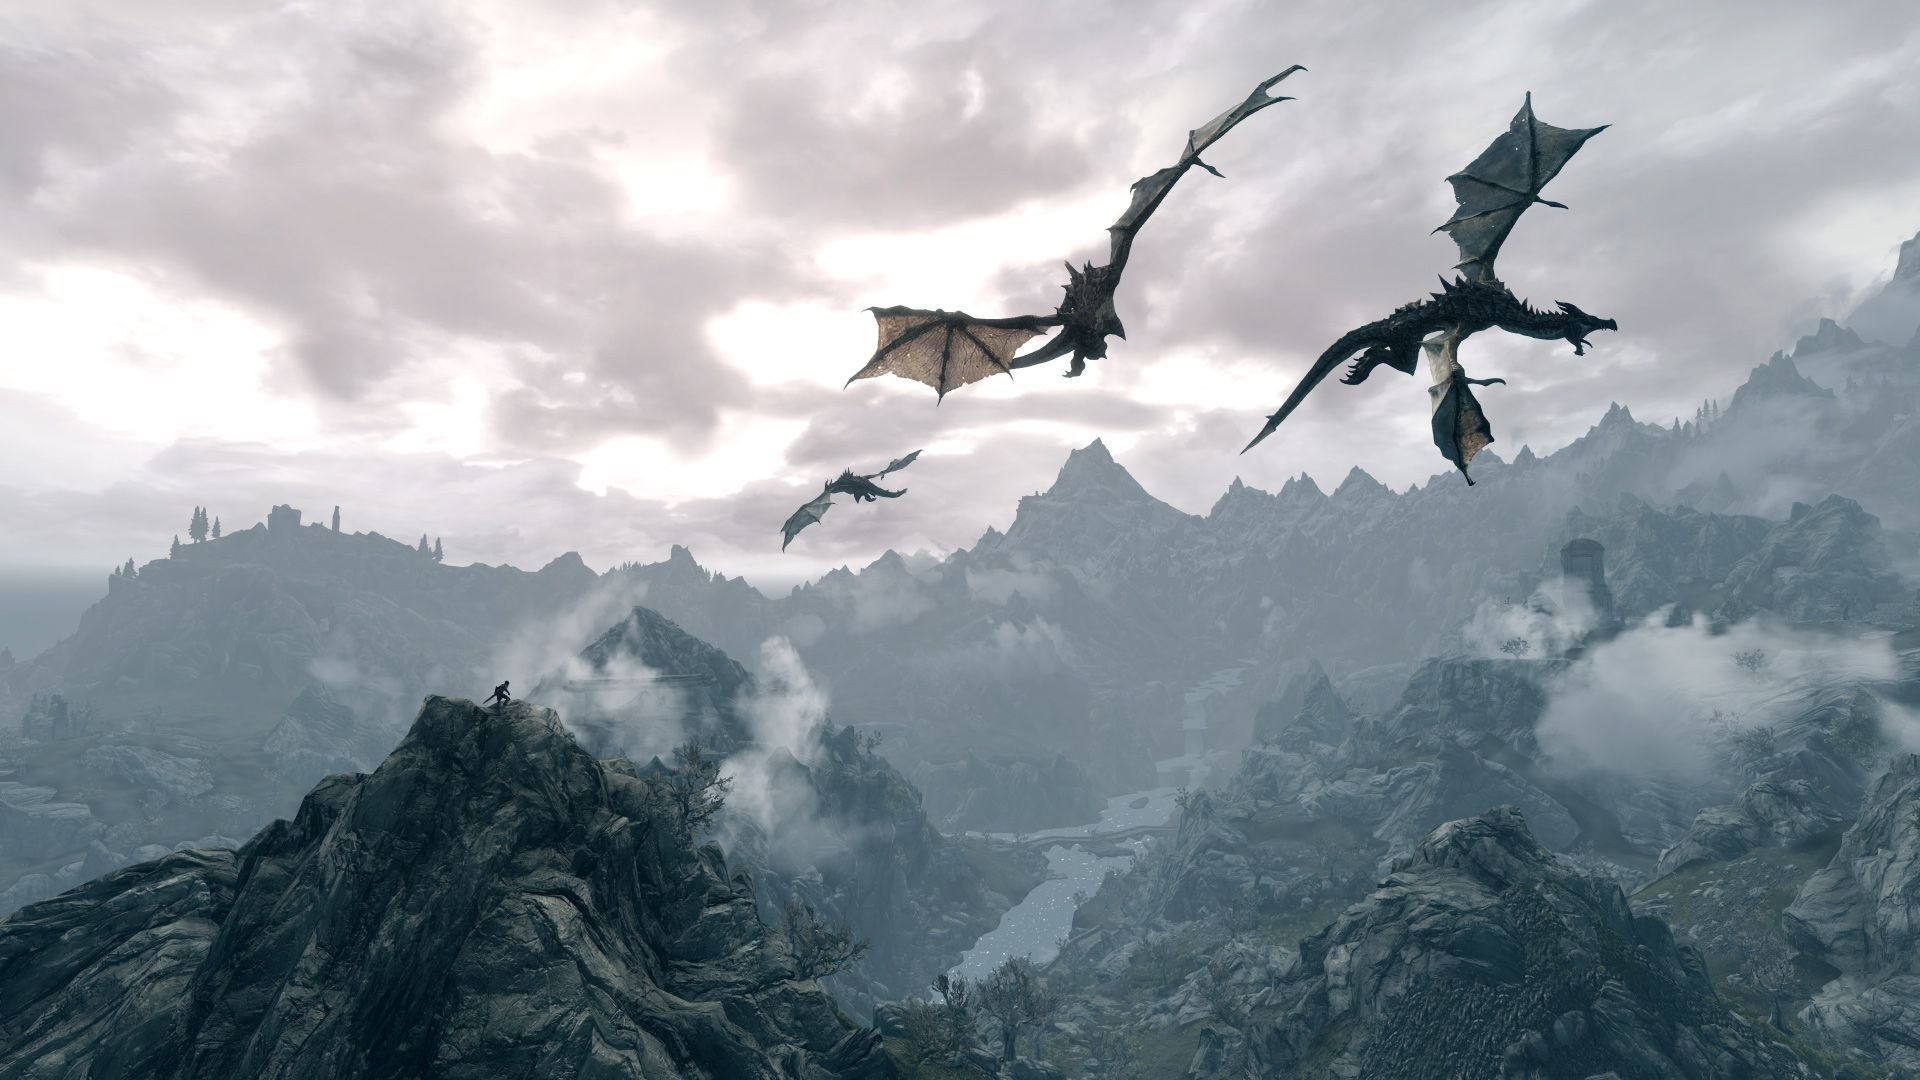 skyrim dragon wallpapers - wallpaper cave | skyrim | pinterest